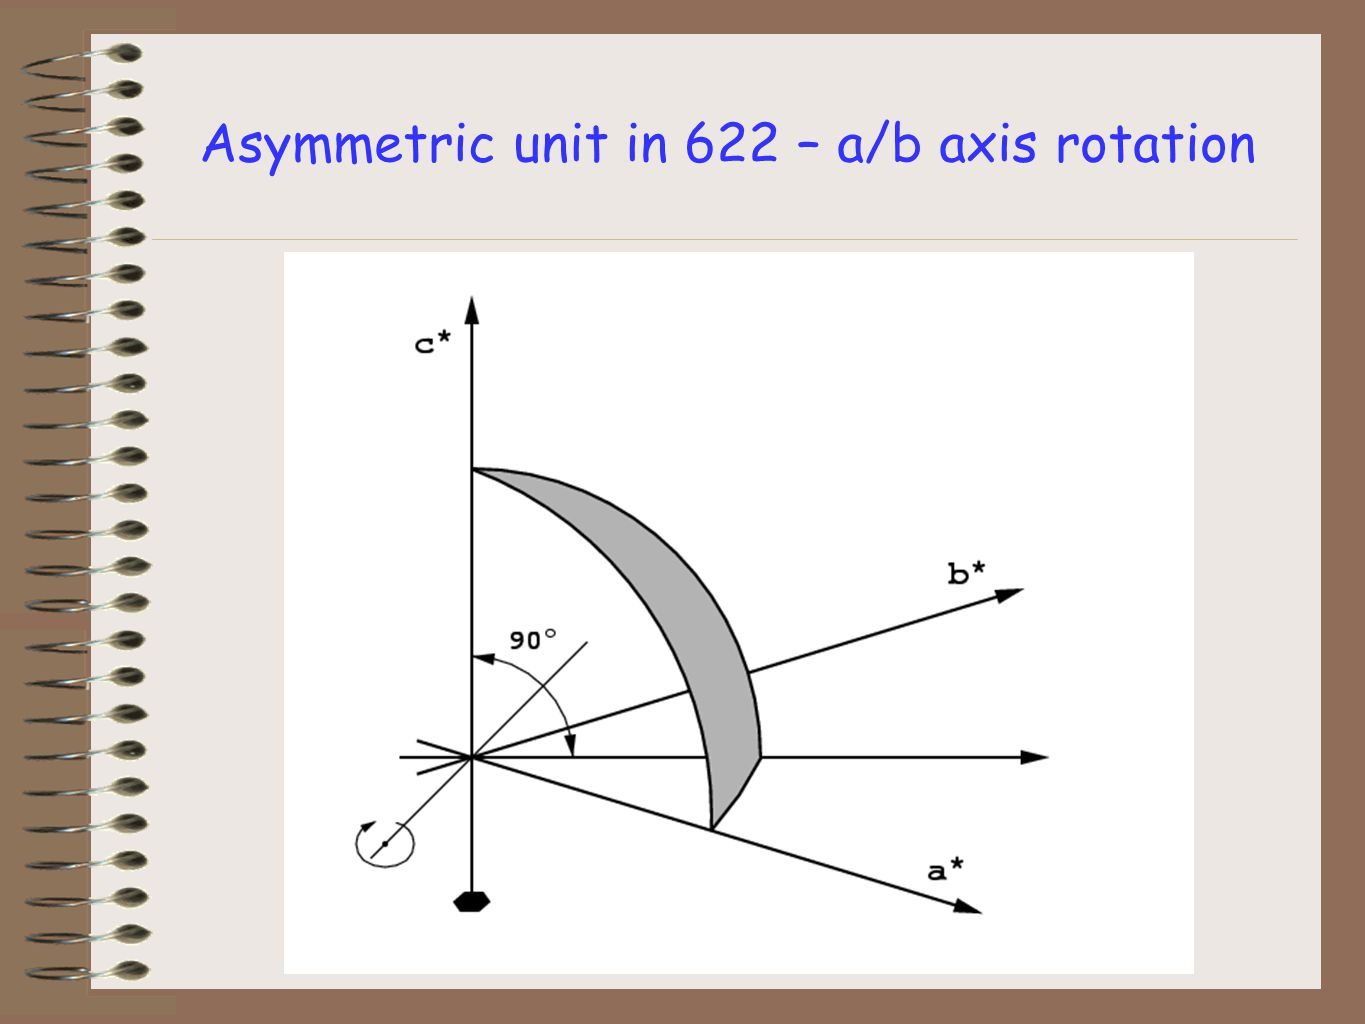 Asymmetric unit in 622 – a/b axis rotation